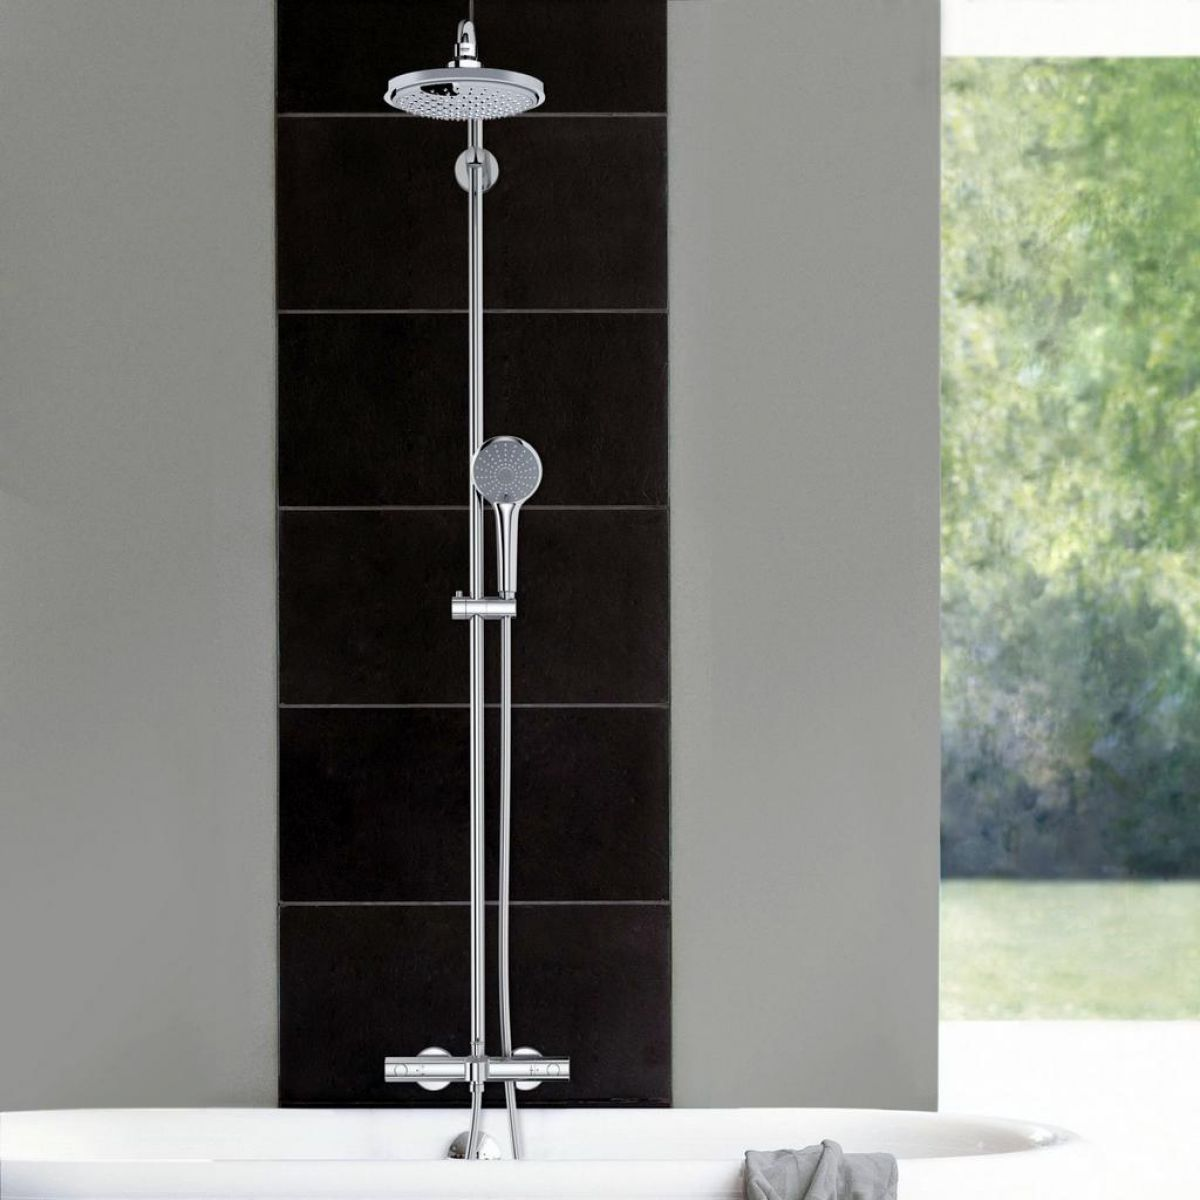 grohe euphoria system 180 thermostatic shower with bath. Black Bedroom Furniture Sets. Home Design Ideas